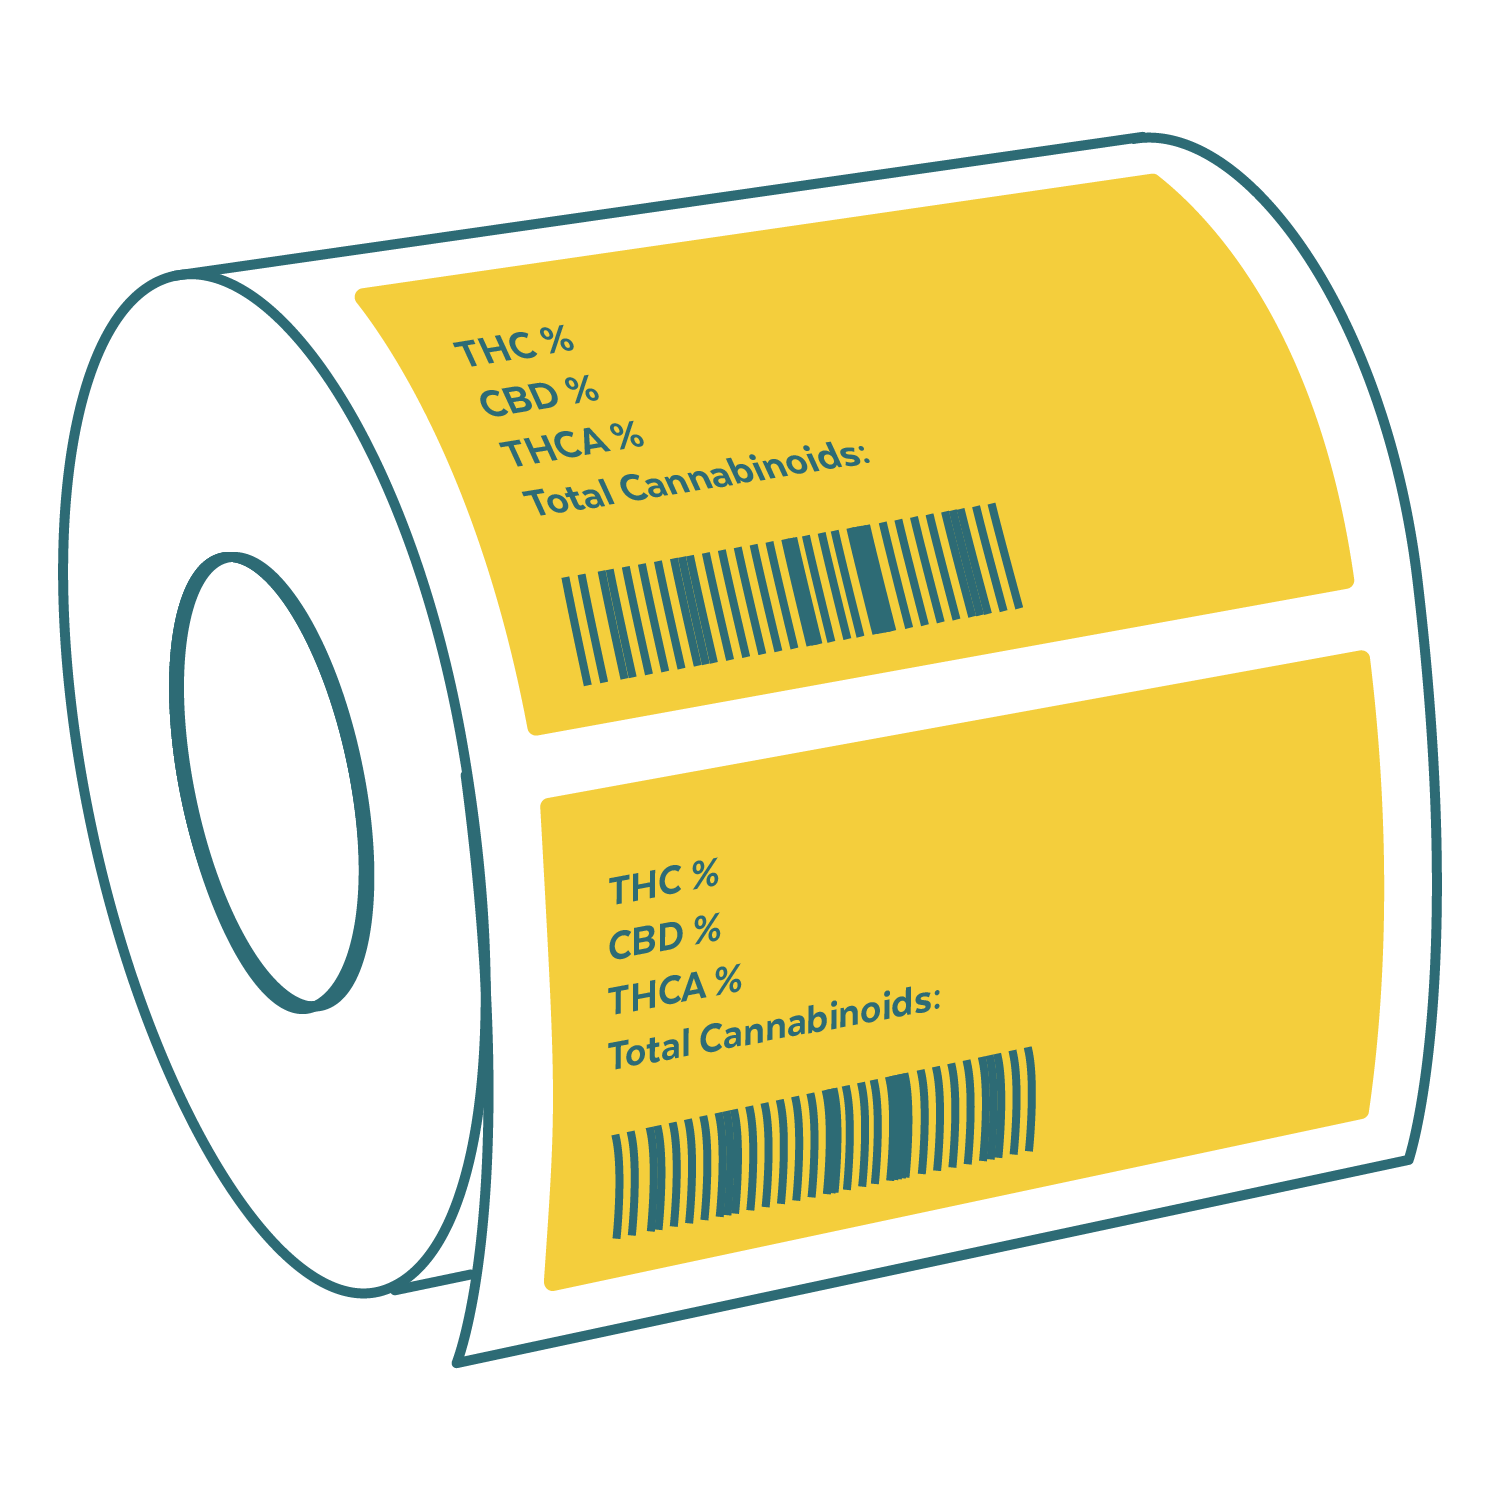 "Copy of <a href=""/comprehensive-labels"" target=""_blank"" style=""color:inherit;"">All-In-One Compliant Labels</a>"